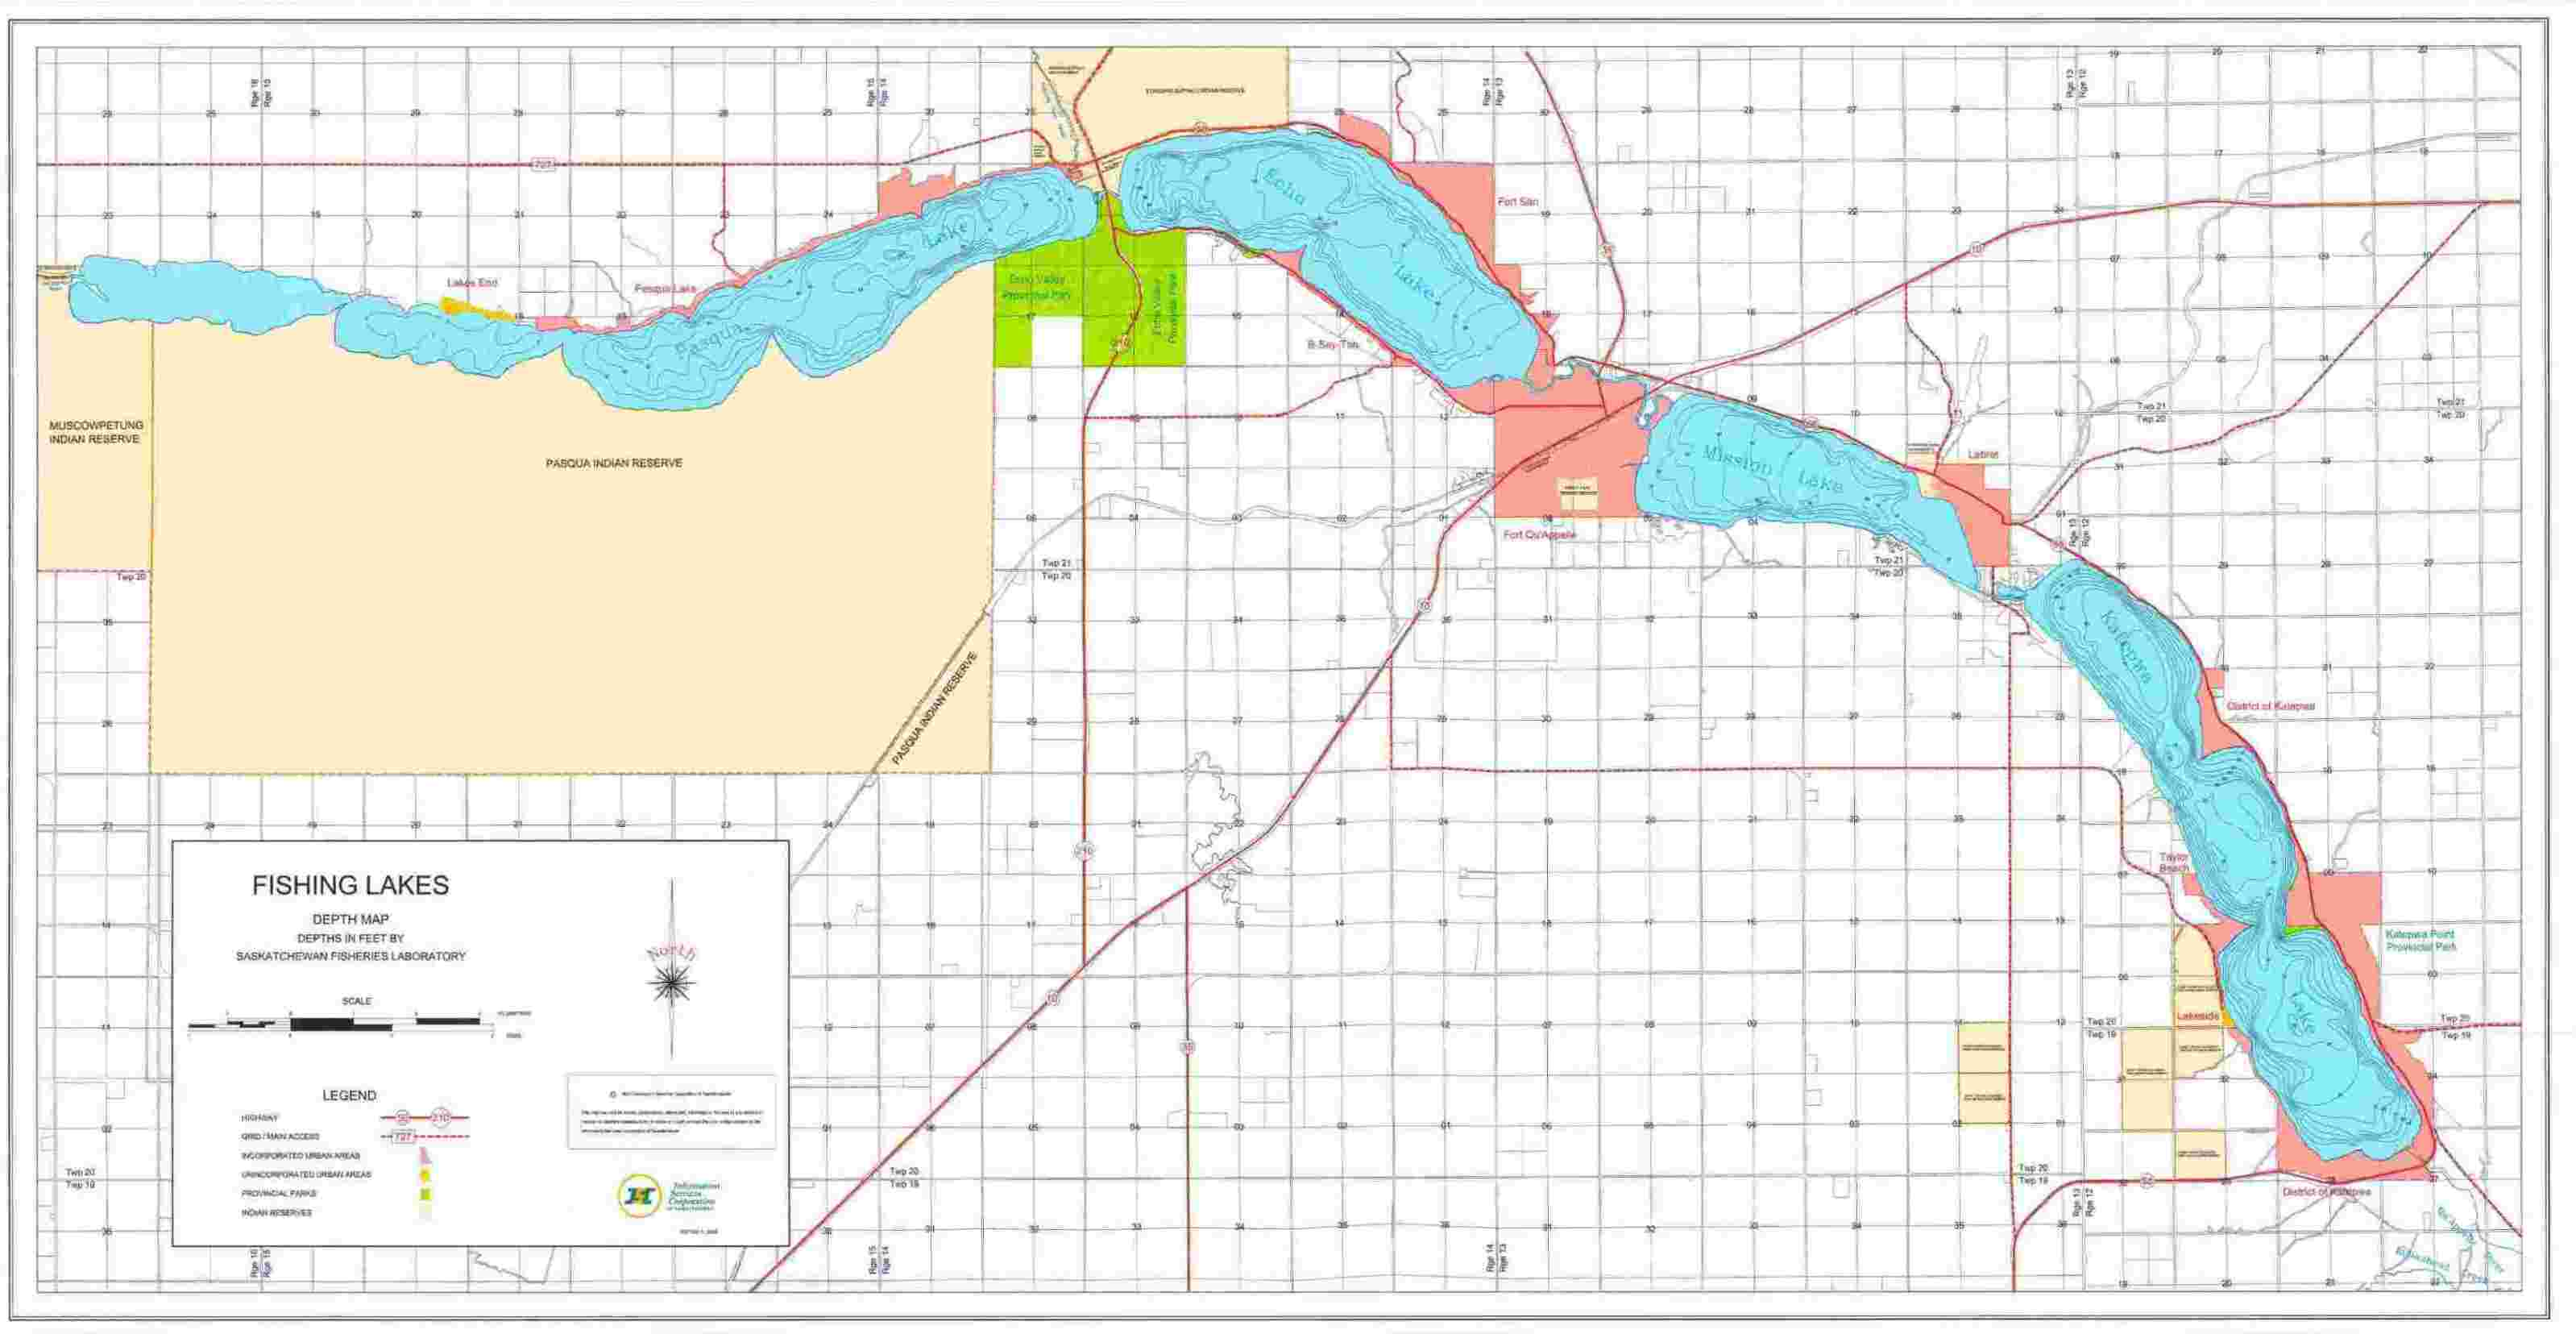 ISC - Lake, River and Hiking Maps Map Of Sask Lakes on map of saskatchewan, map of canada, ecuador rivers and lakes, duck hunting quill lakes,